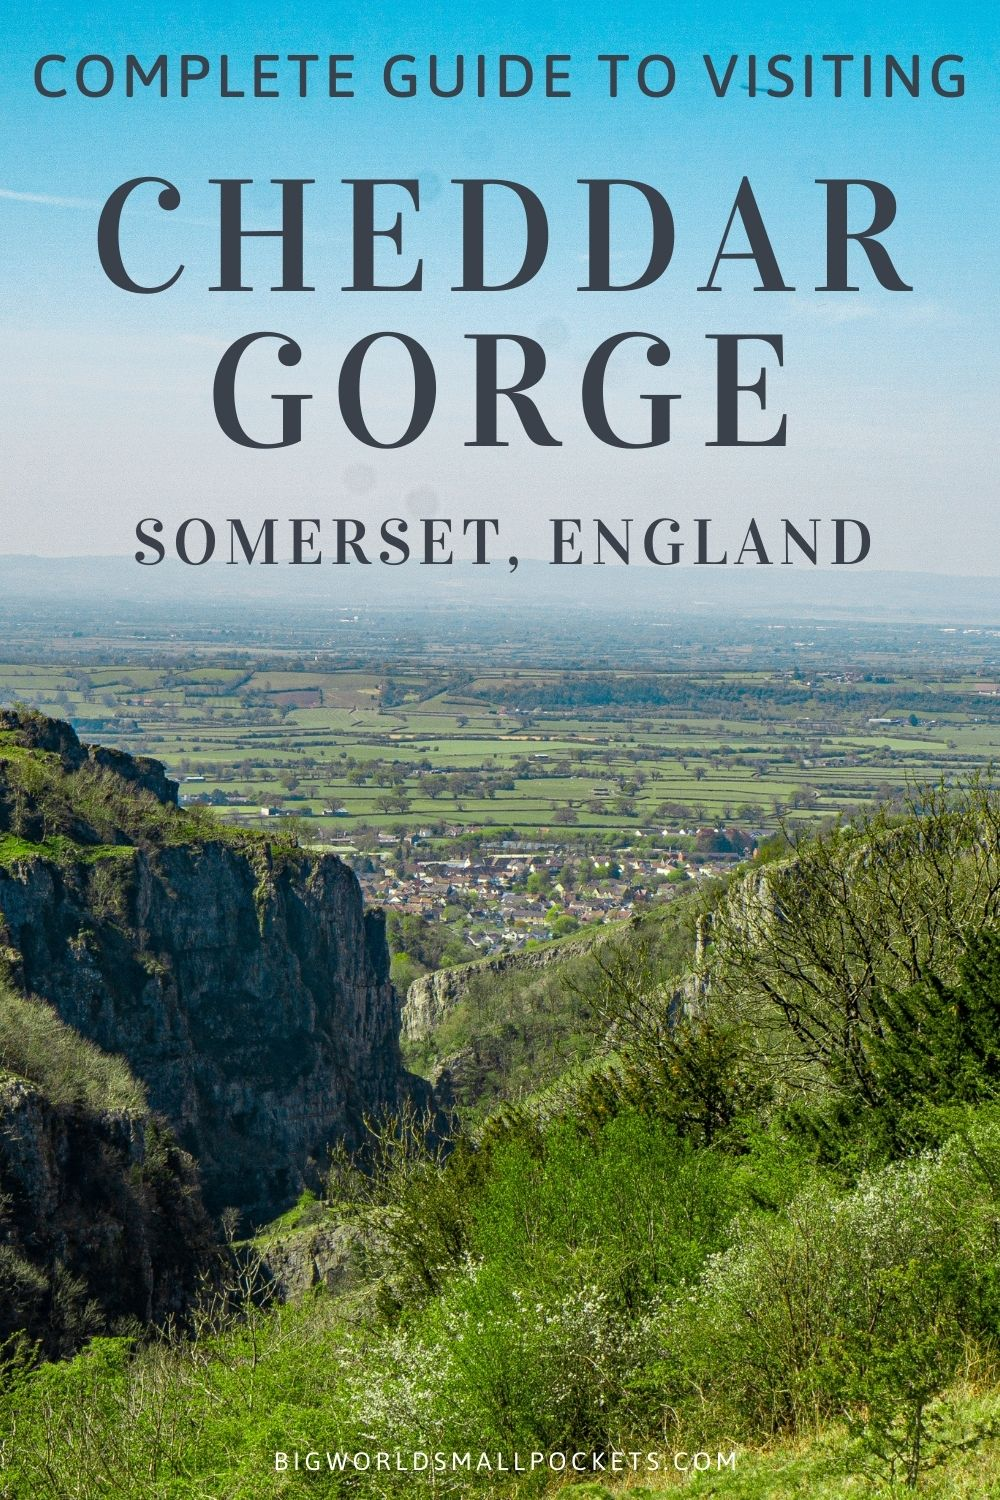 Ultimate Guide to Visiting Cheddar Gorge, Somerset, England